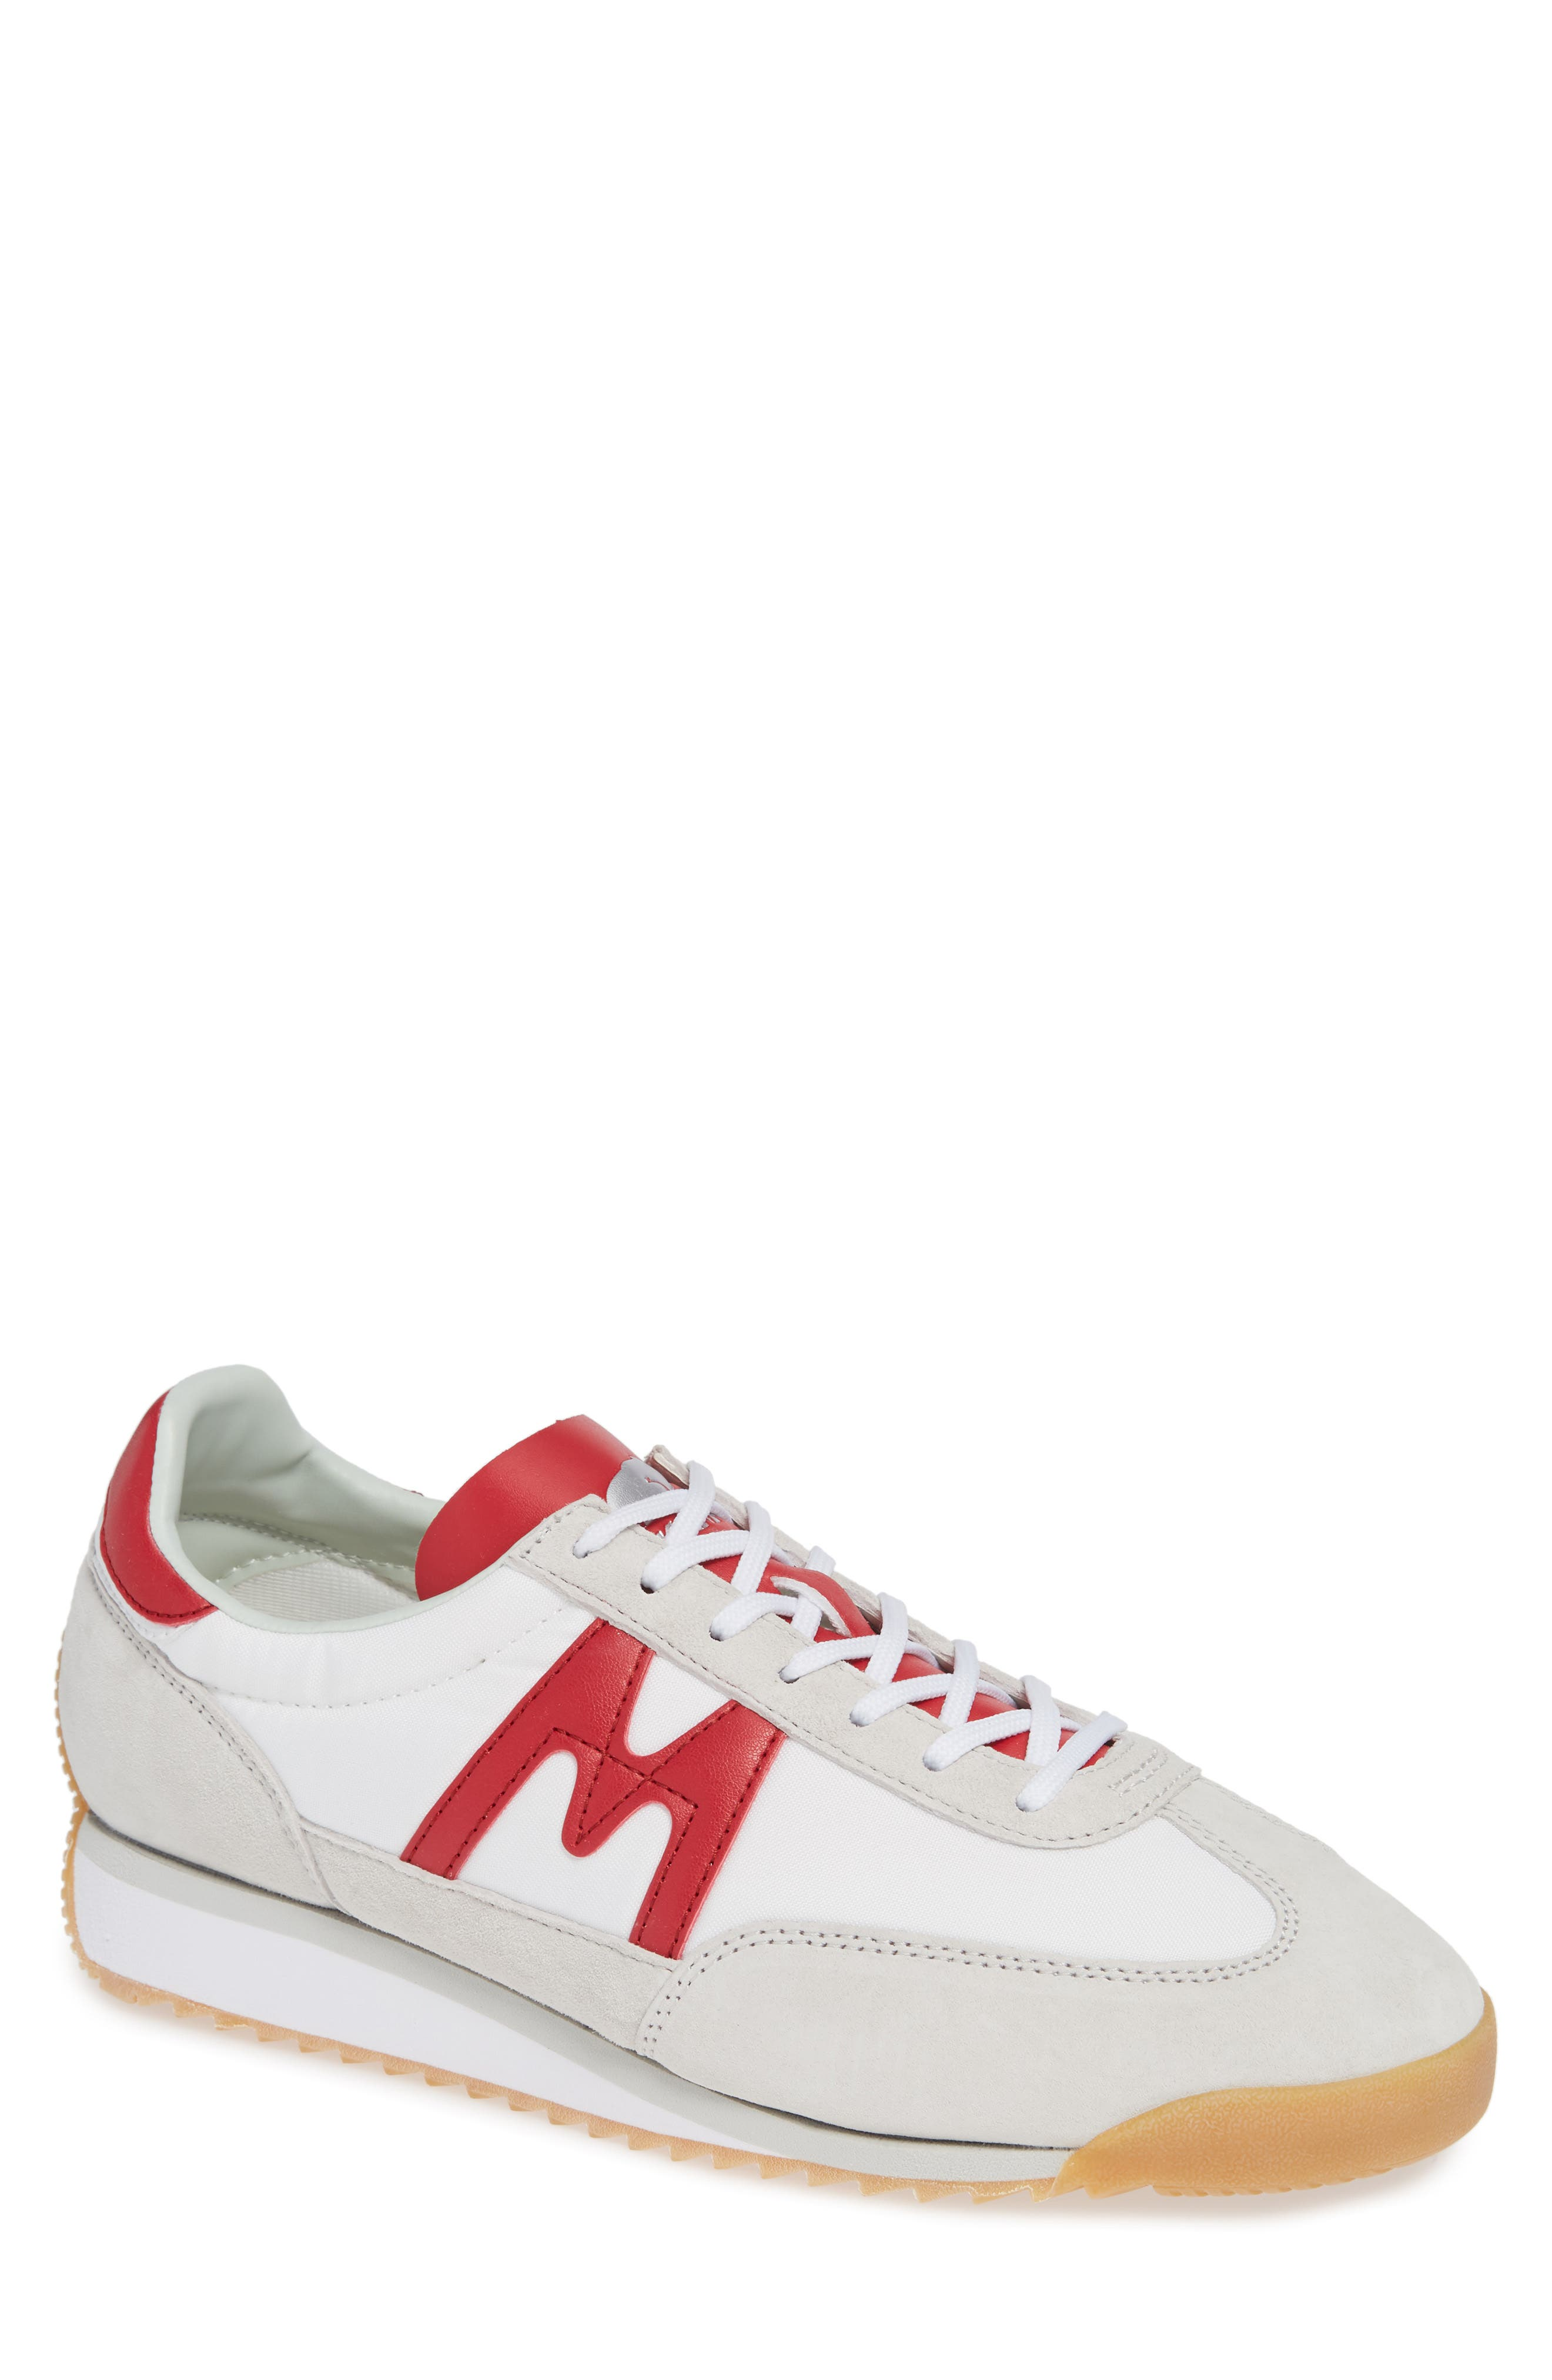 KARHU Men'S Championair Lace-Up Sneakers in Bright White / Racing Red